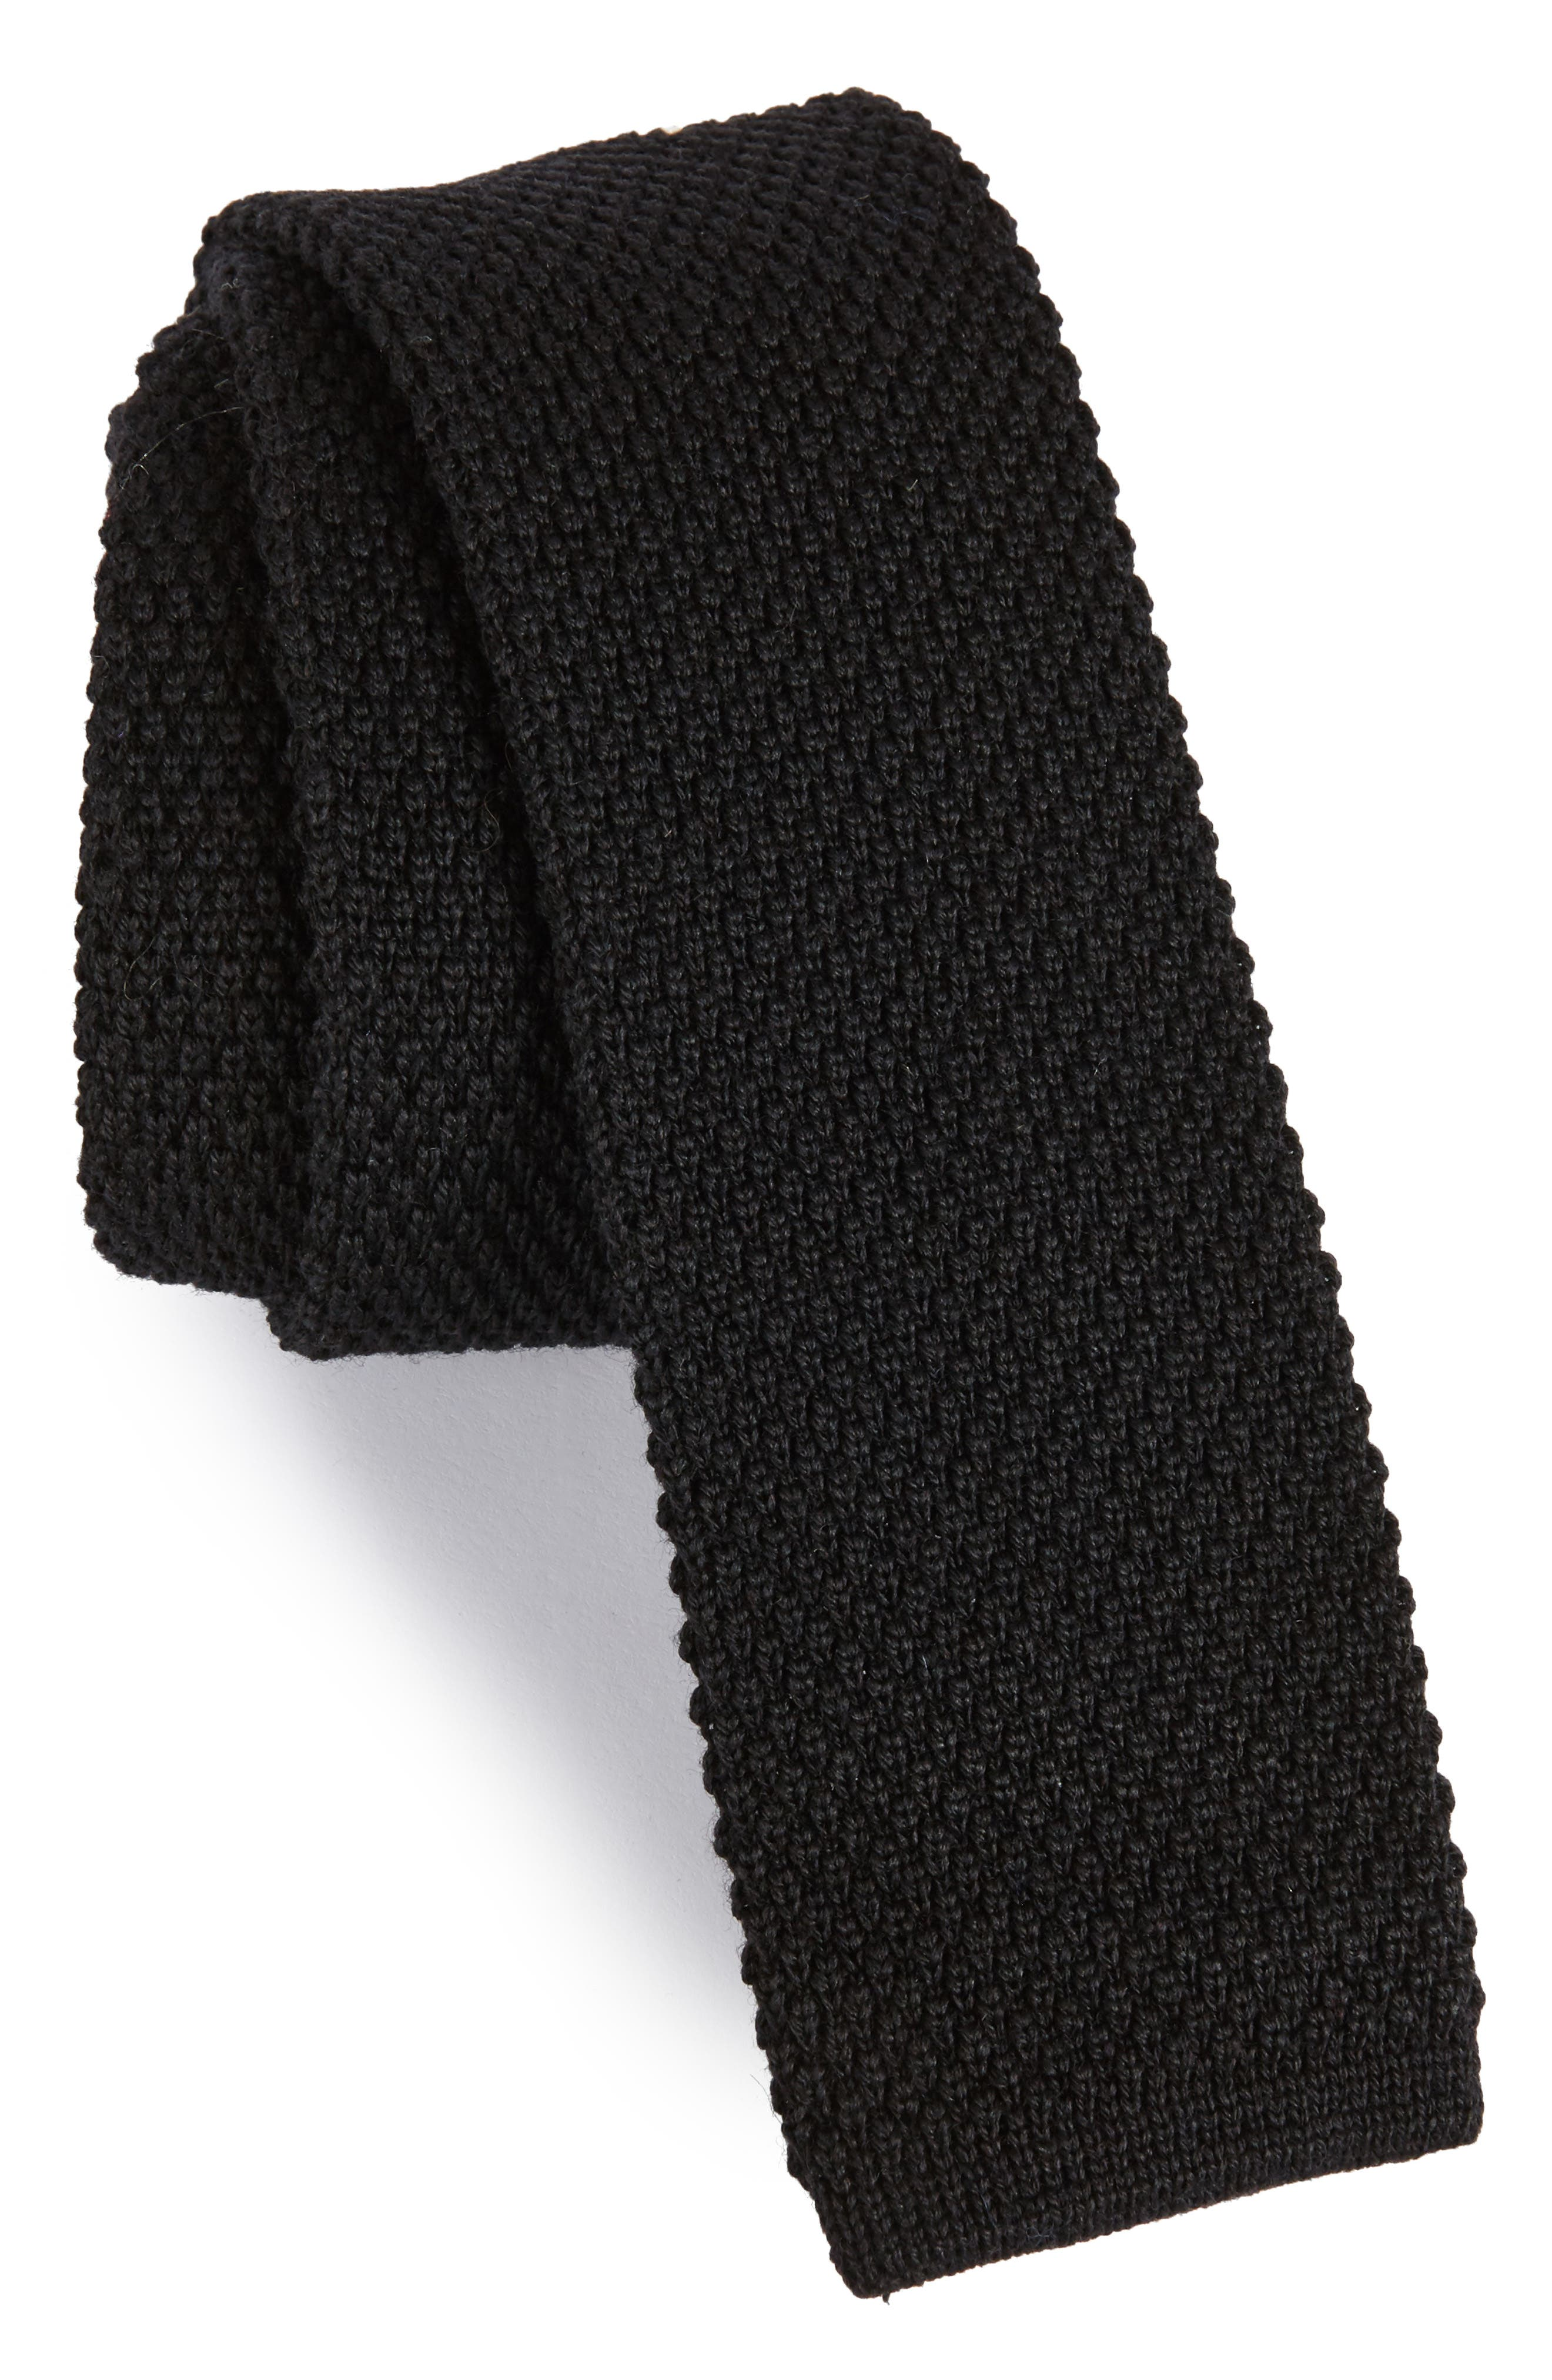 Solid Knit Wool Skinny Tie,                             Main thumbnail 1, color,                             001